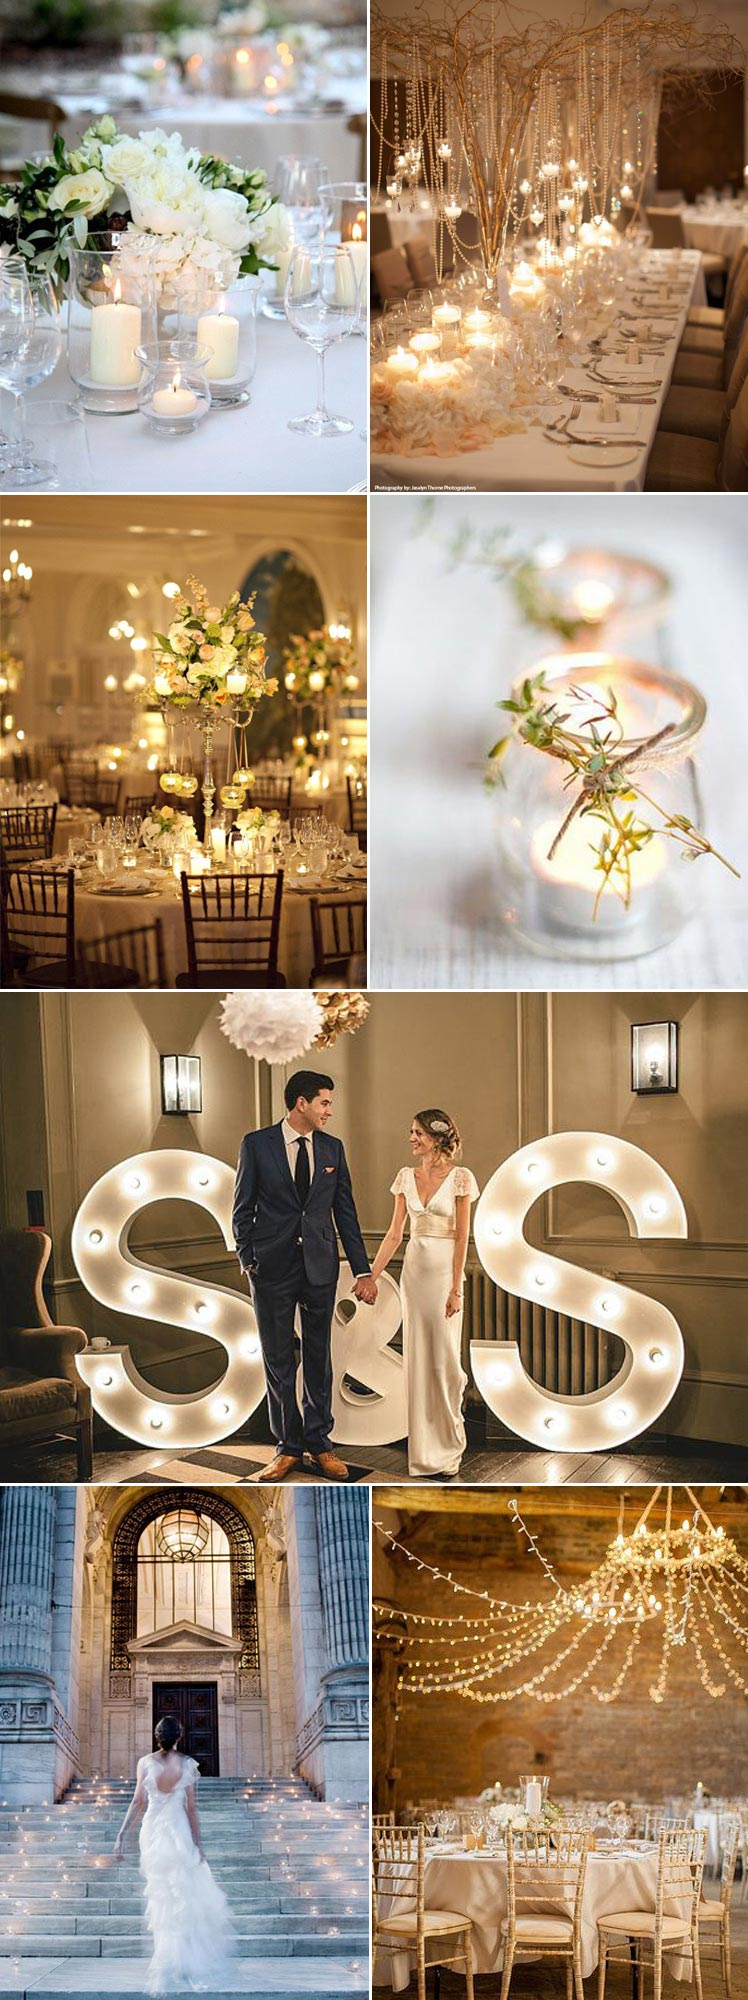 Stunning lighting ideas for your wedding day